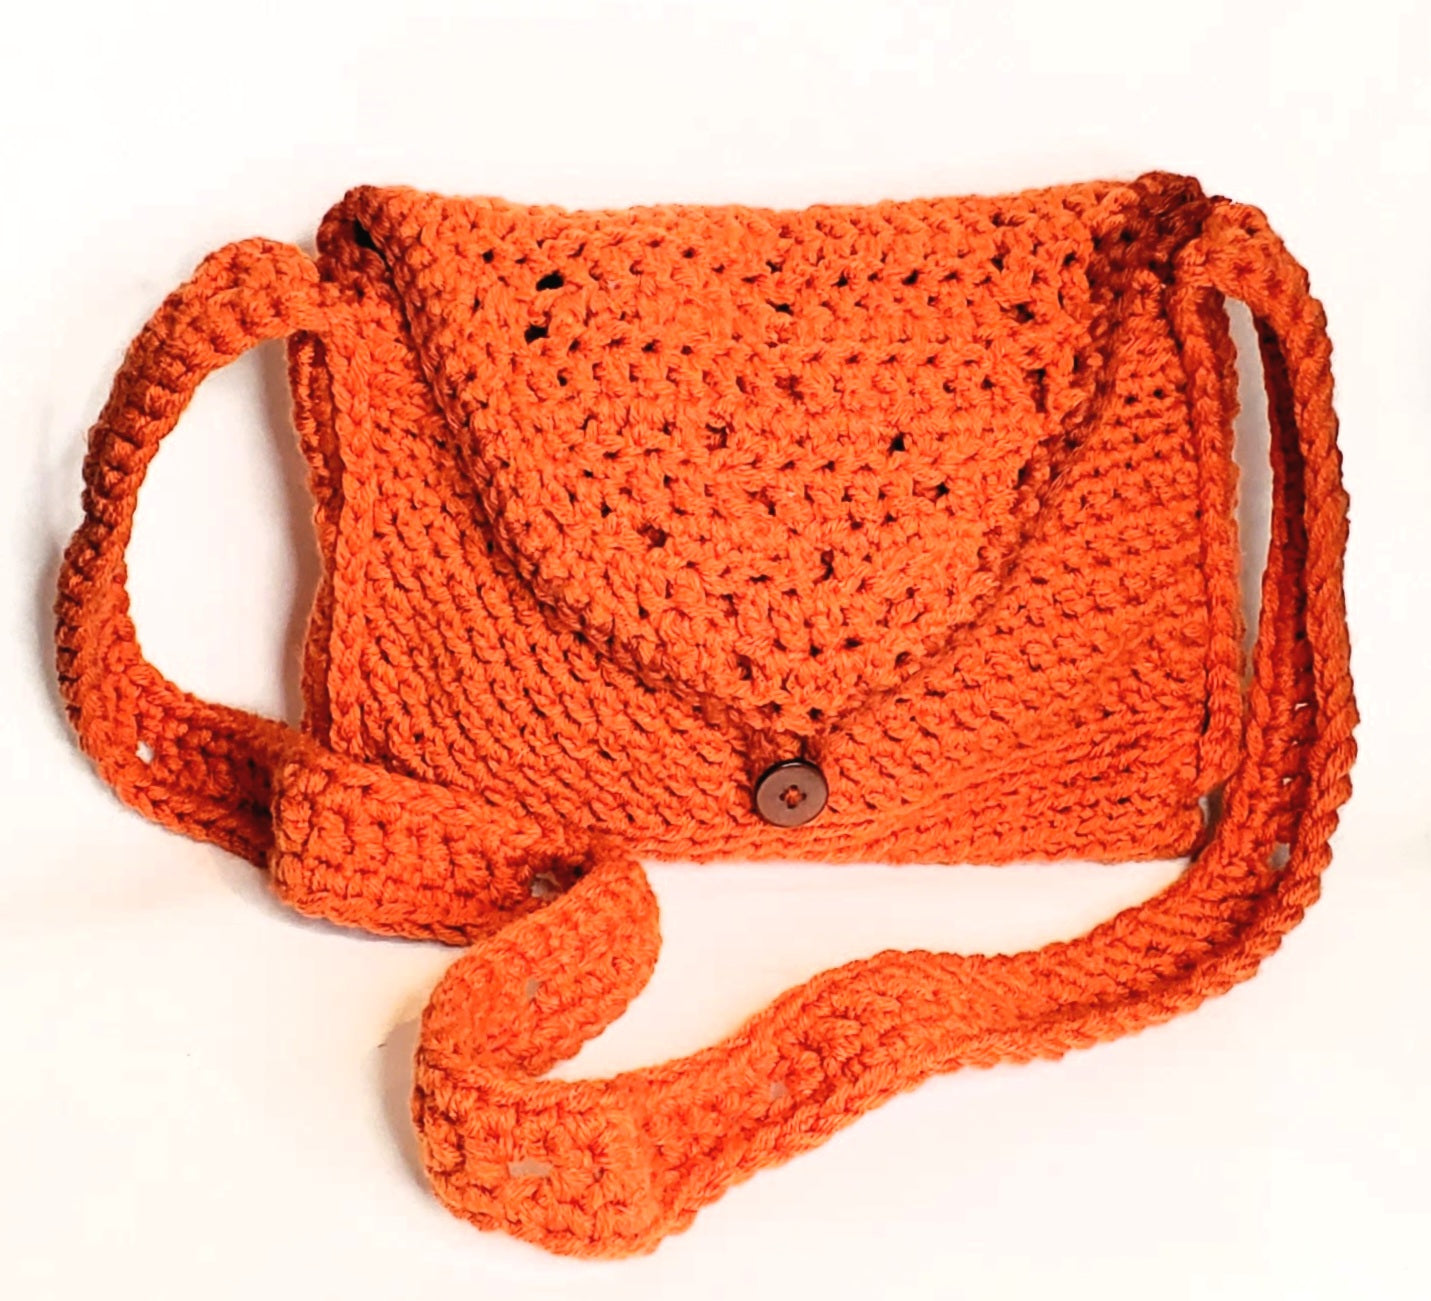 Style & Pride Handcrafted Knitted Handbags